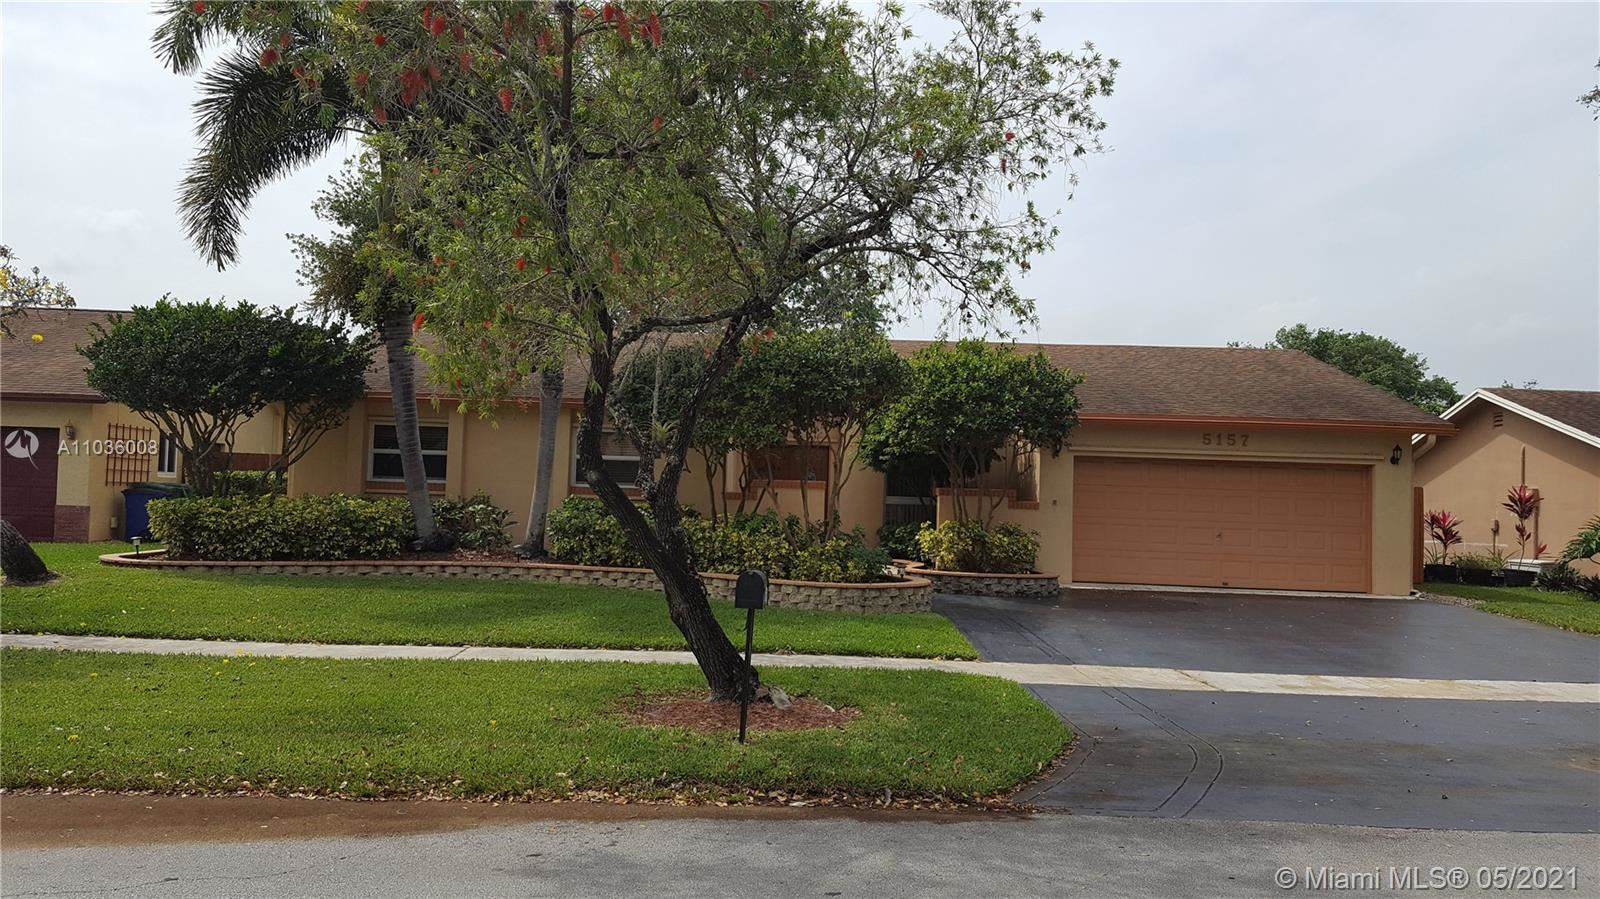 5157 SW 87th Ave, Cooper City, FL 33328 - #: A11036008